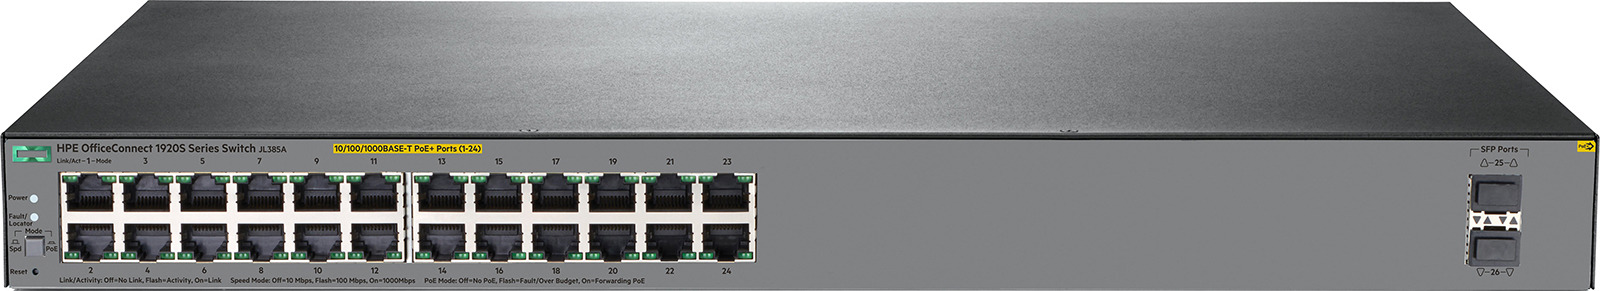 Коммутатор HPE OfficeConnect 1920S, управляемый, JL385A коммутатор hp 1920s switch jl385a